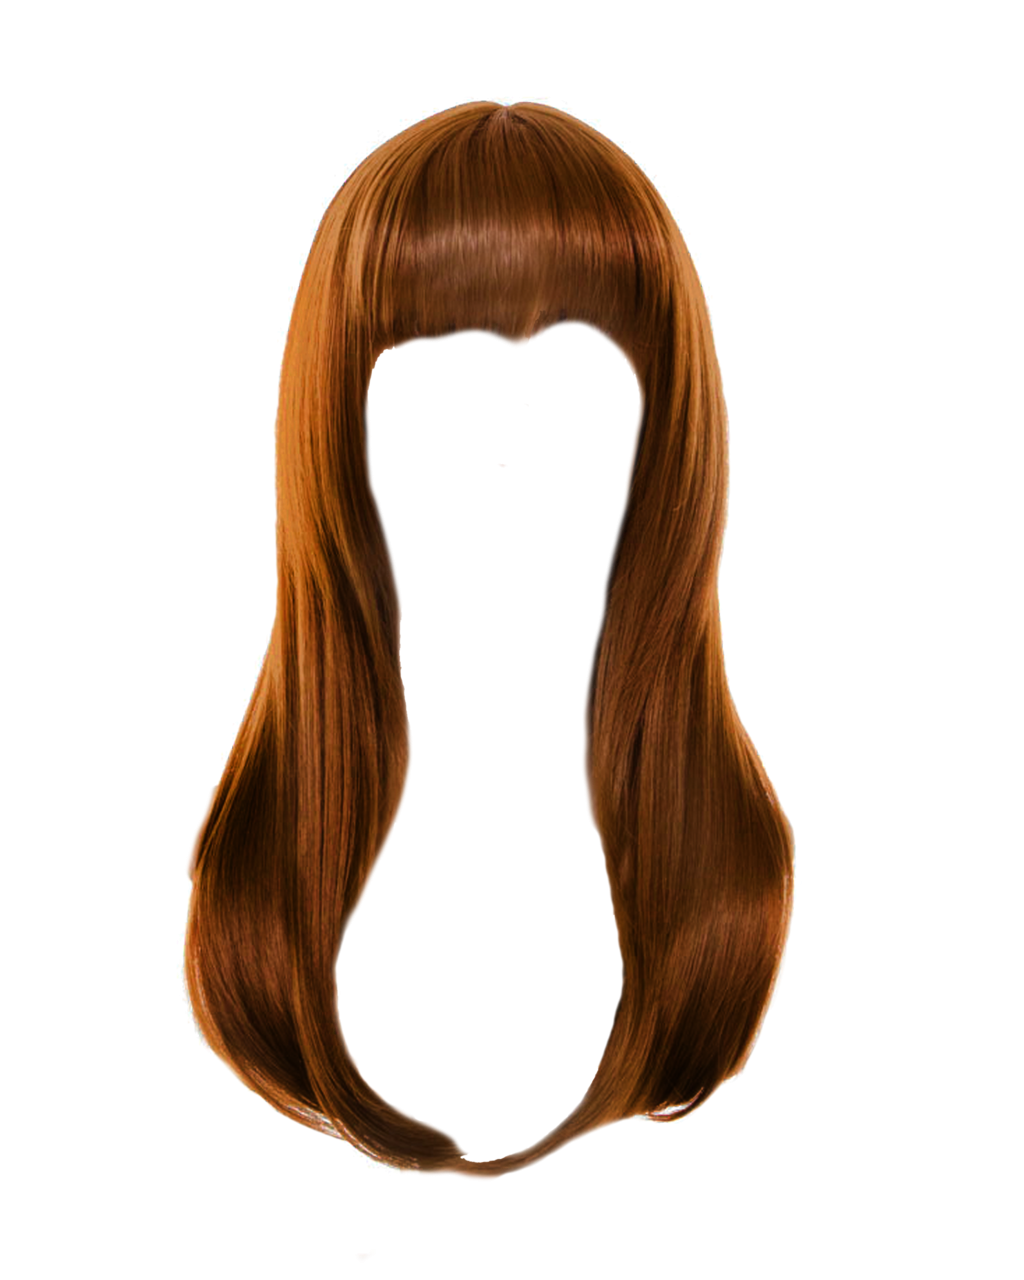 Wig vector doll. Women hair png image